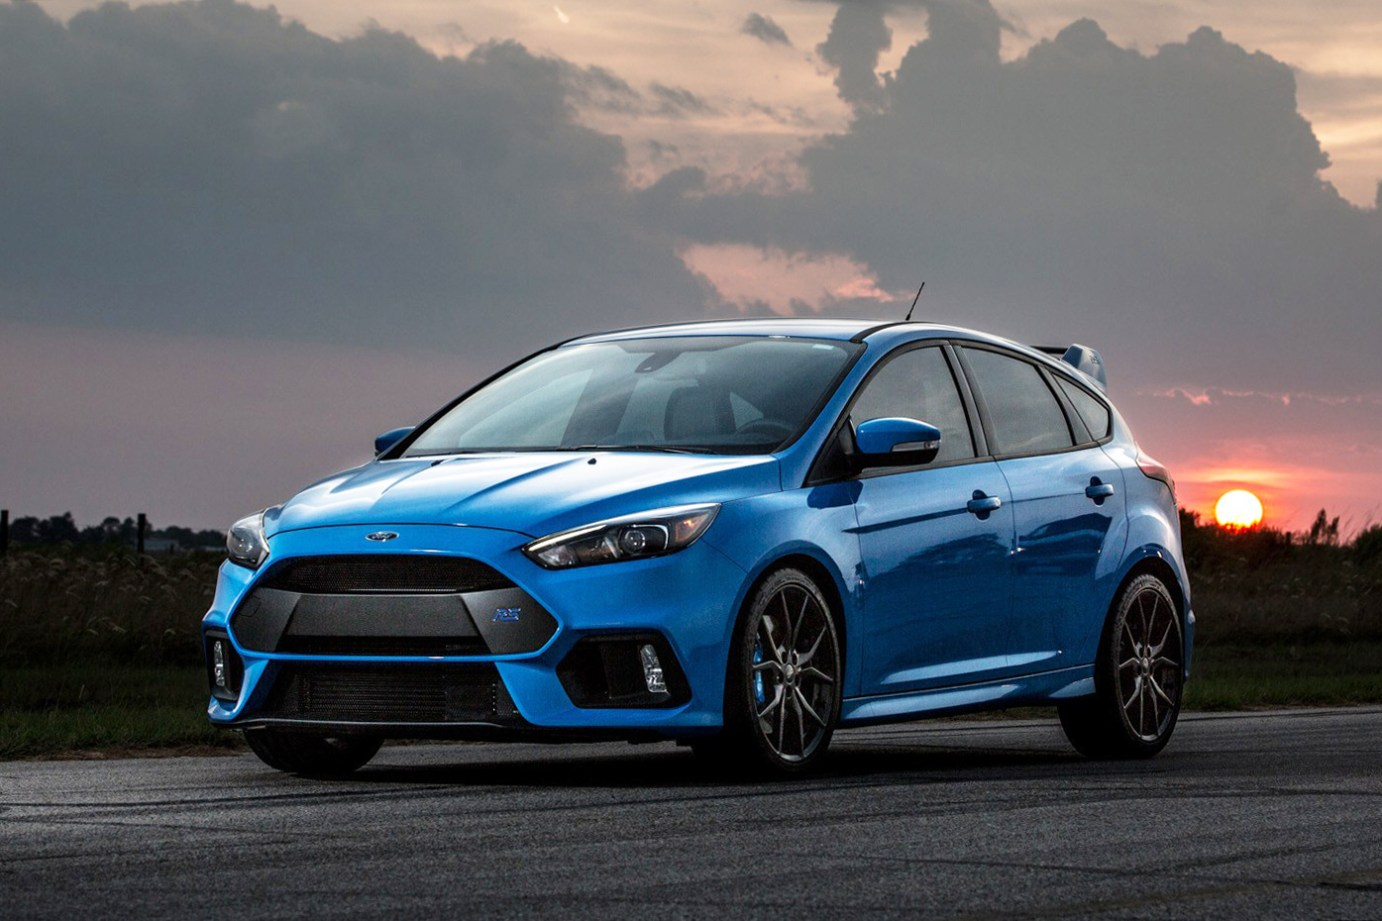 hennessey performance gives the ford focus rs a boost. Black Bedroom Furniture Sets. Home Design Ideas